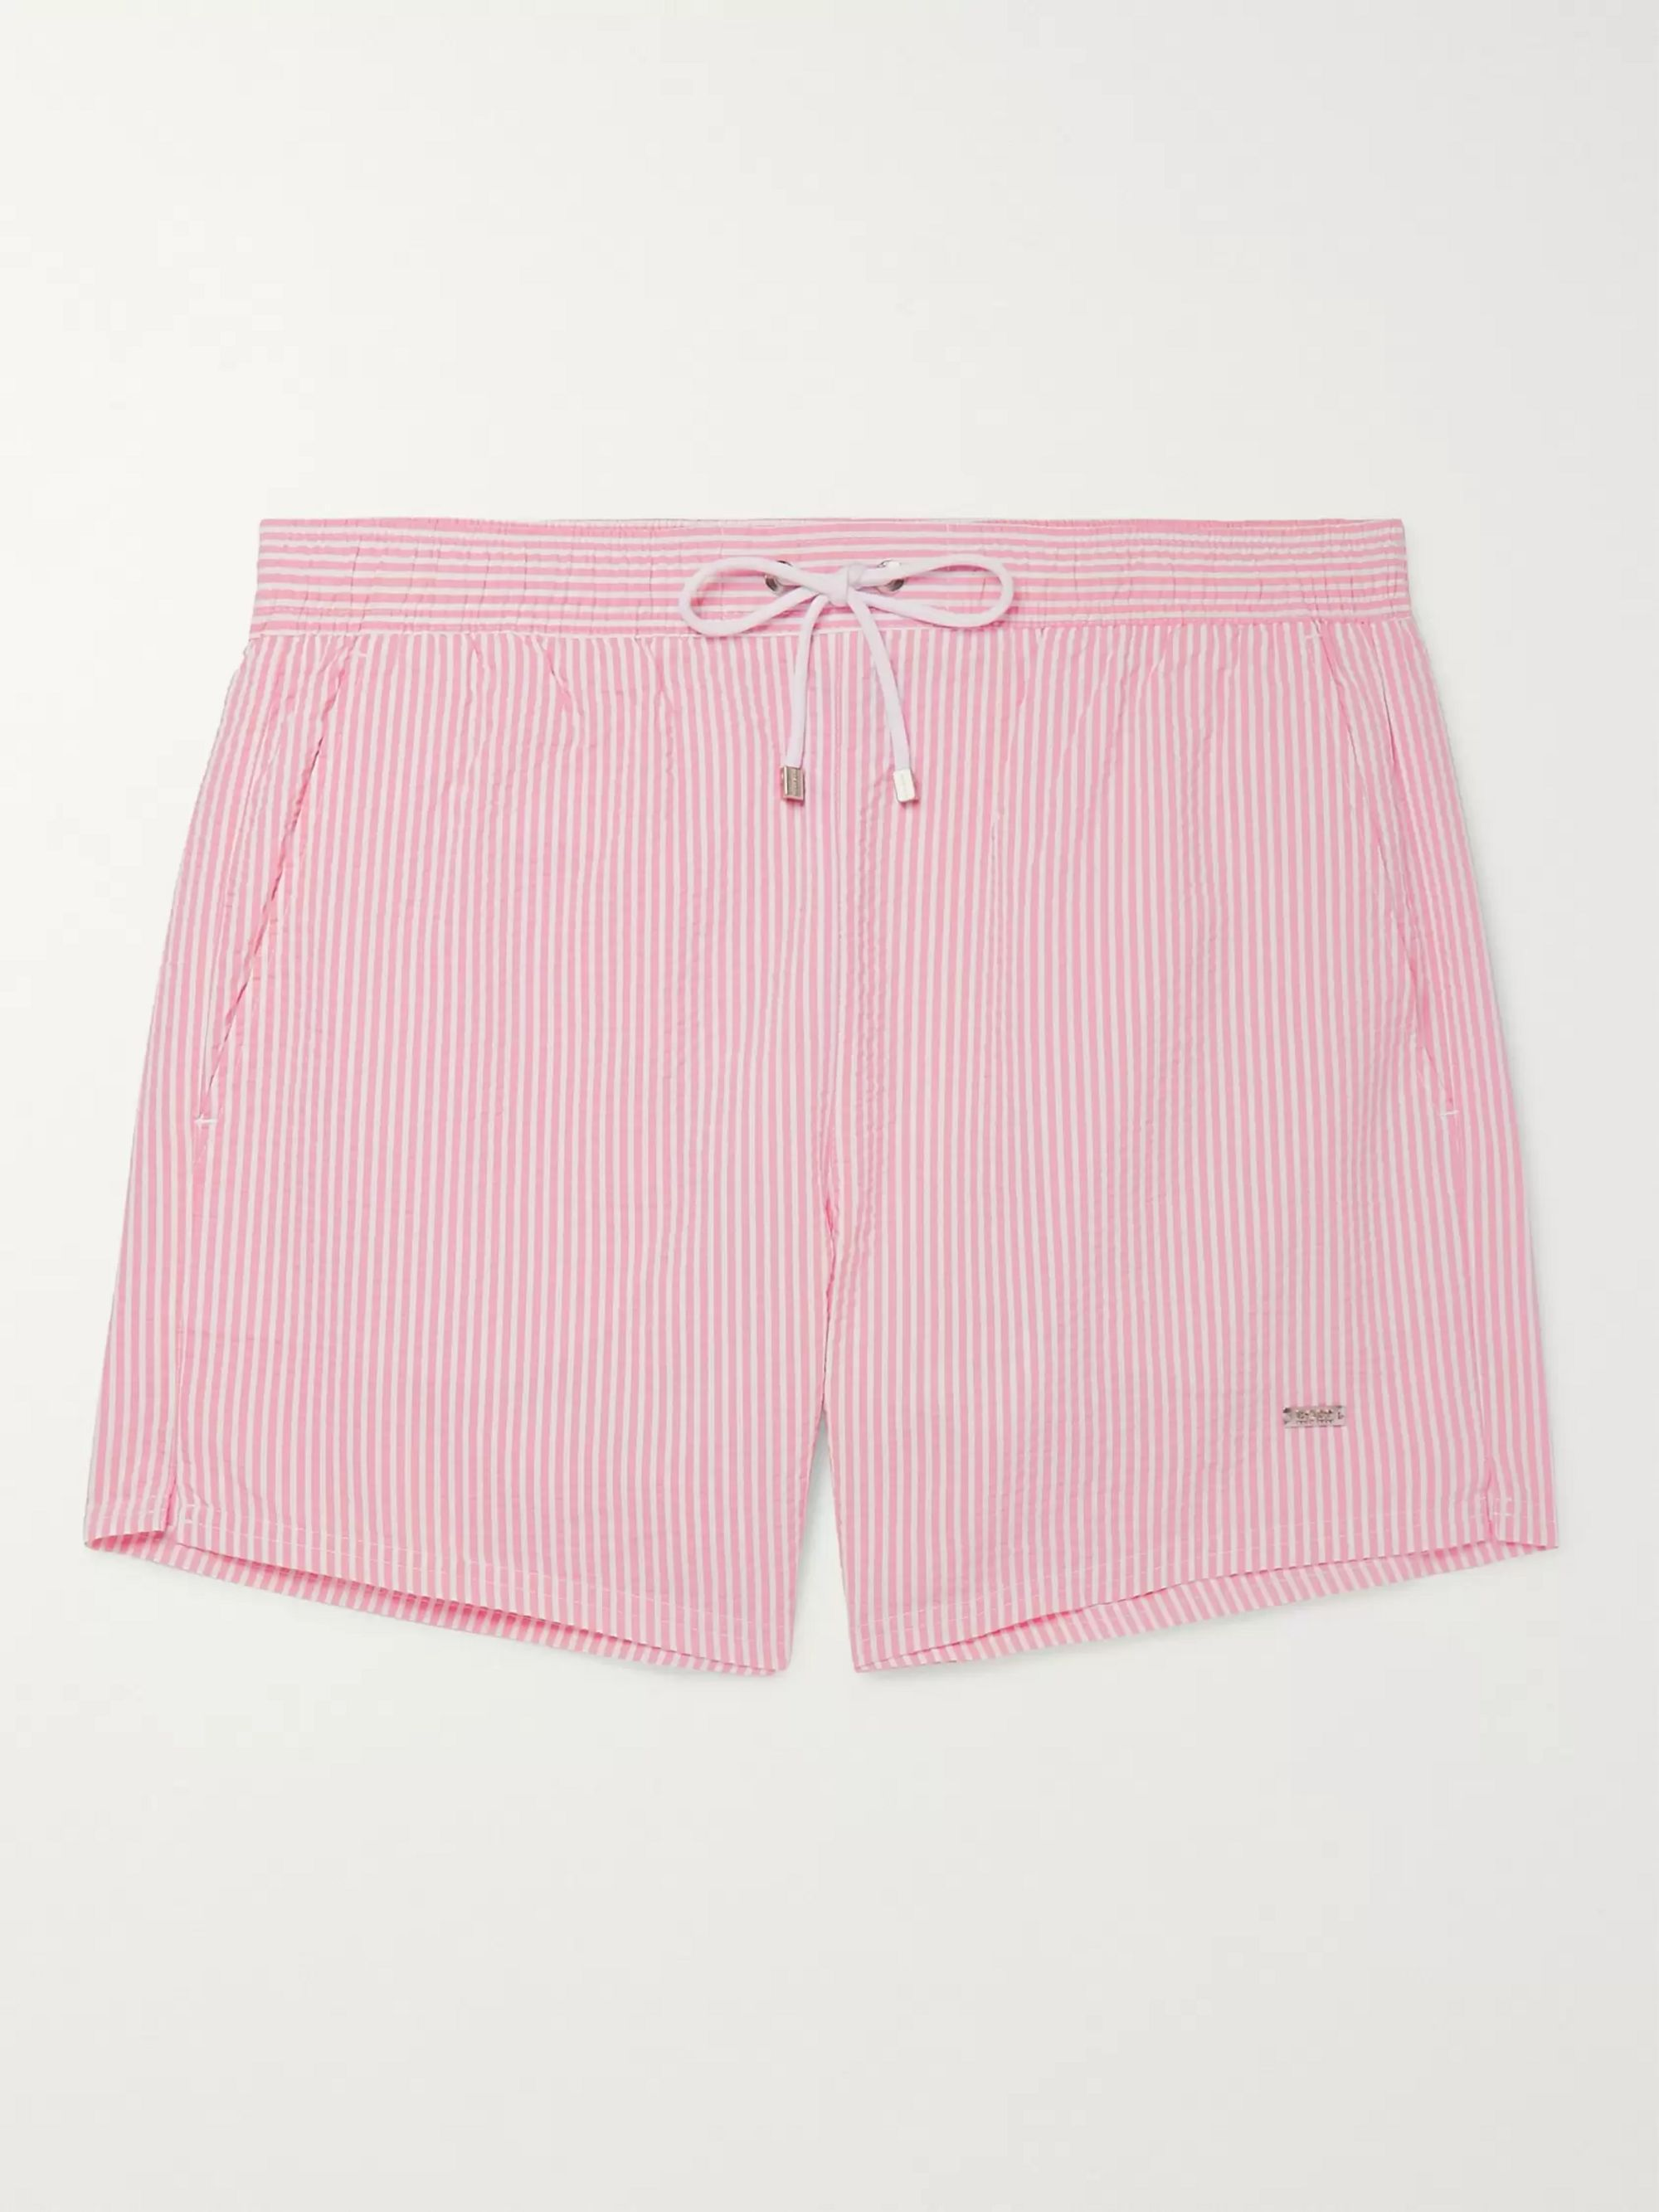 Hugo Boss Mid-Length Striped Seersucker Swim Shorts